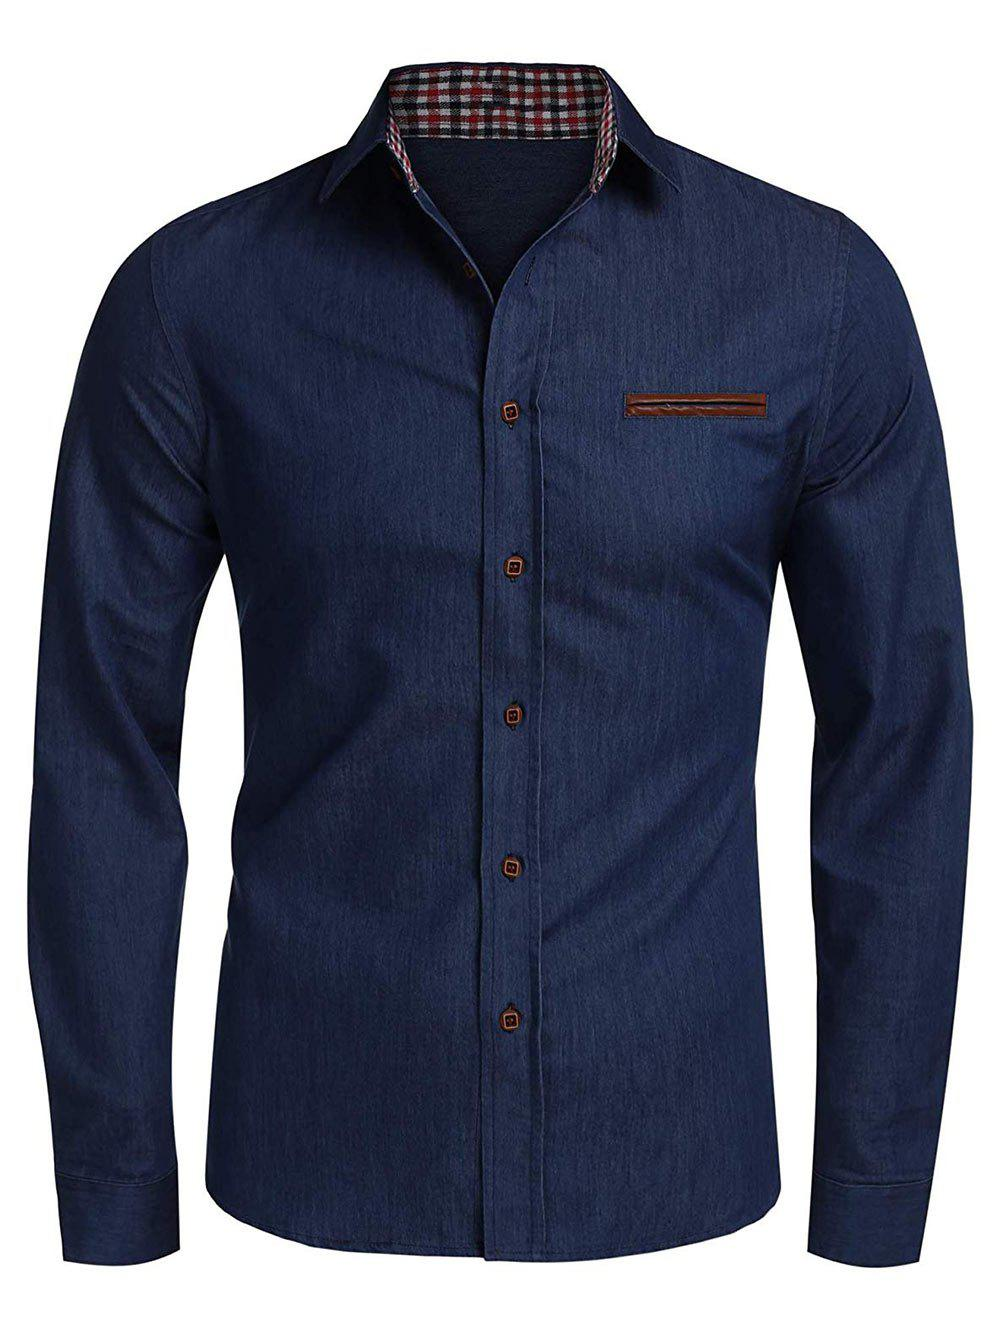 Plaid Edge Button Up Casual Long Sleeve Shirt, Denim dark blue